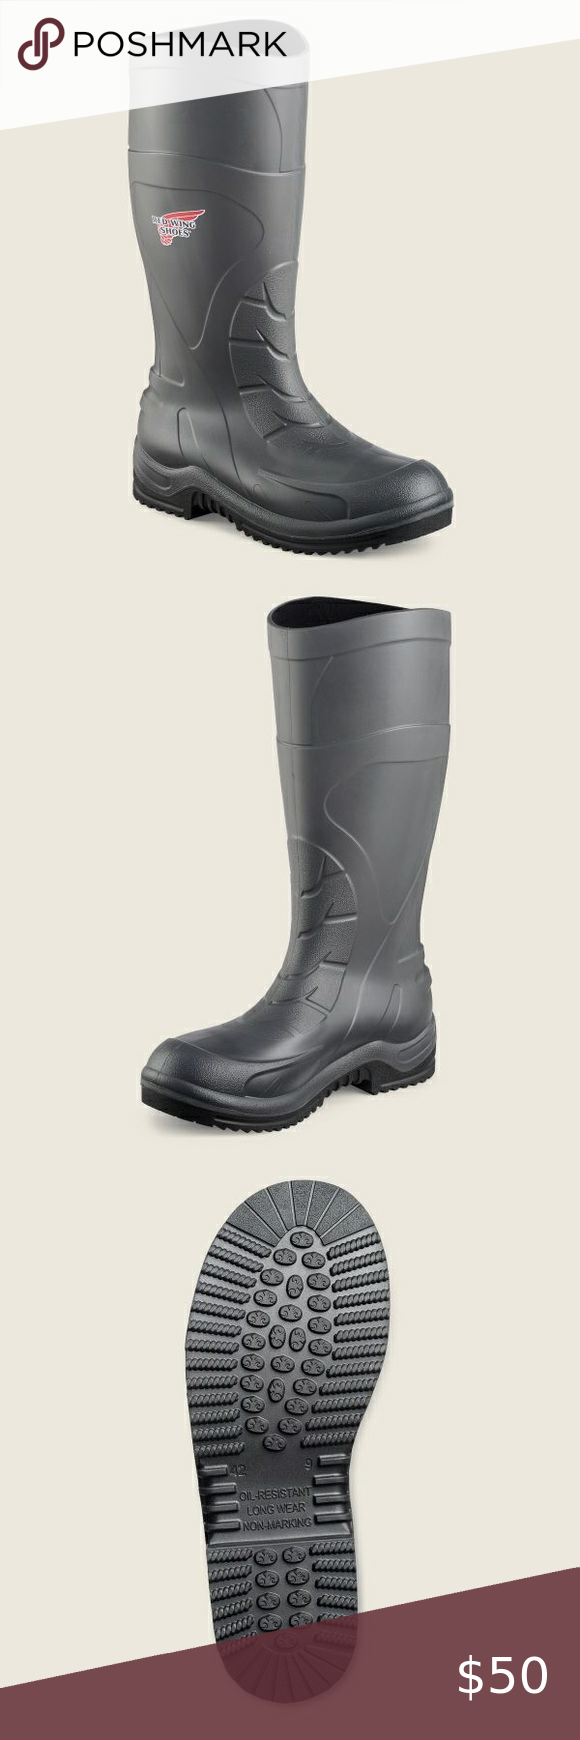 Red wing rubber boots model 59001 Steel